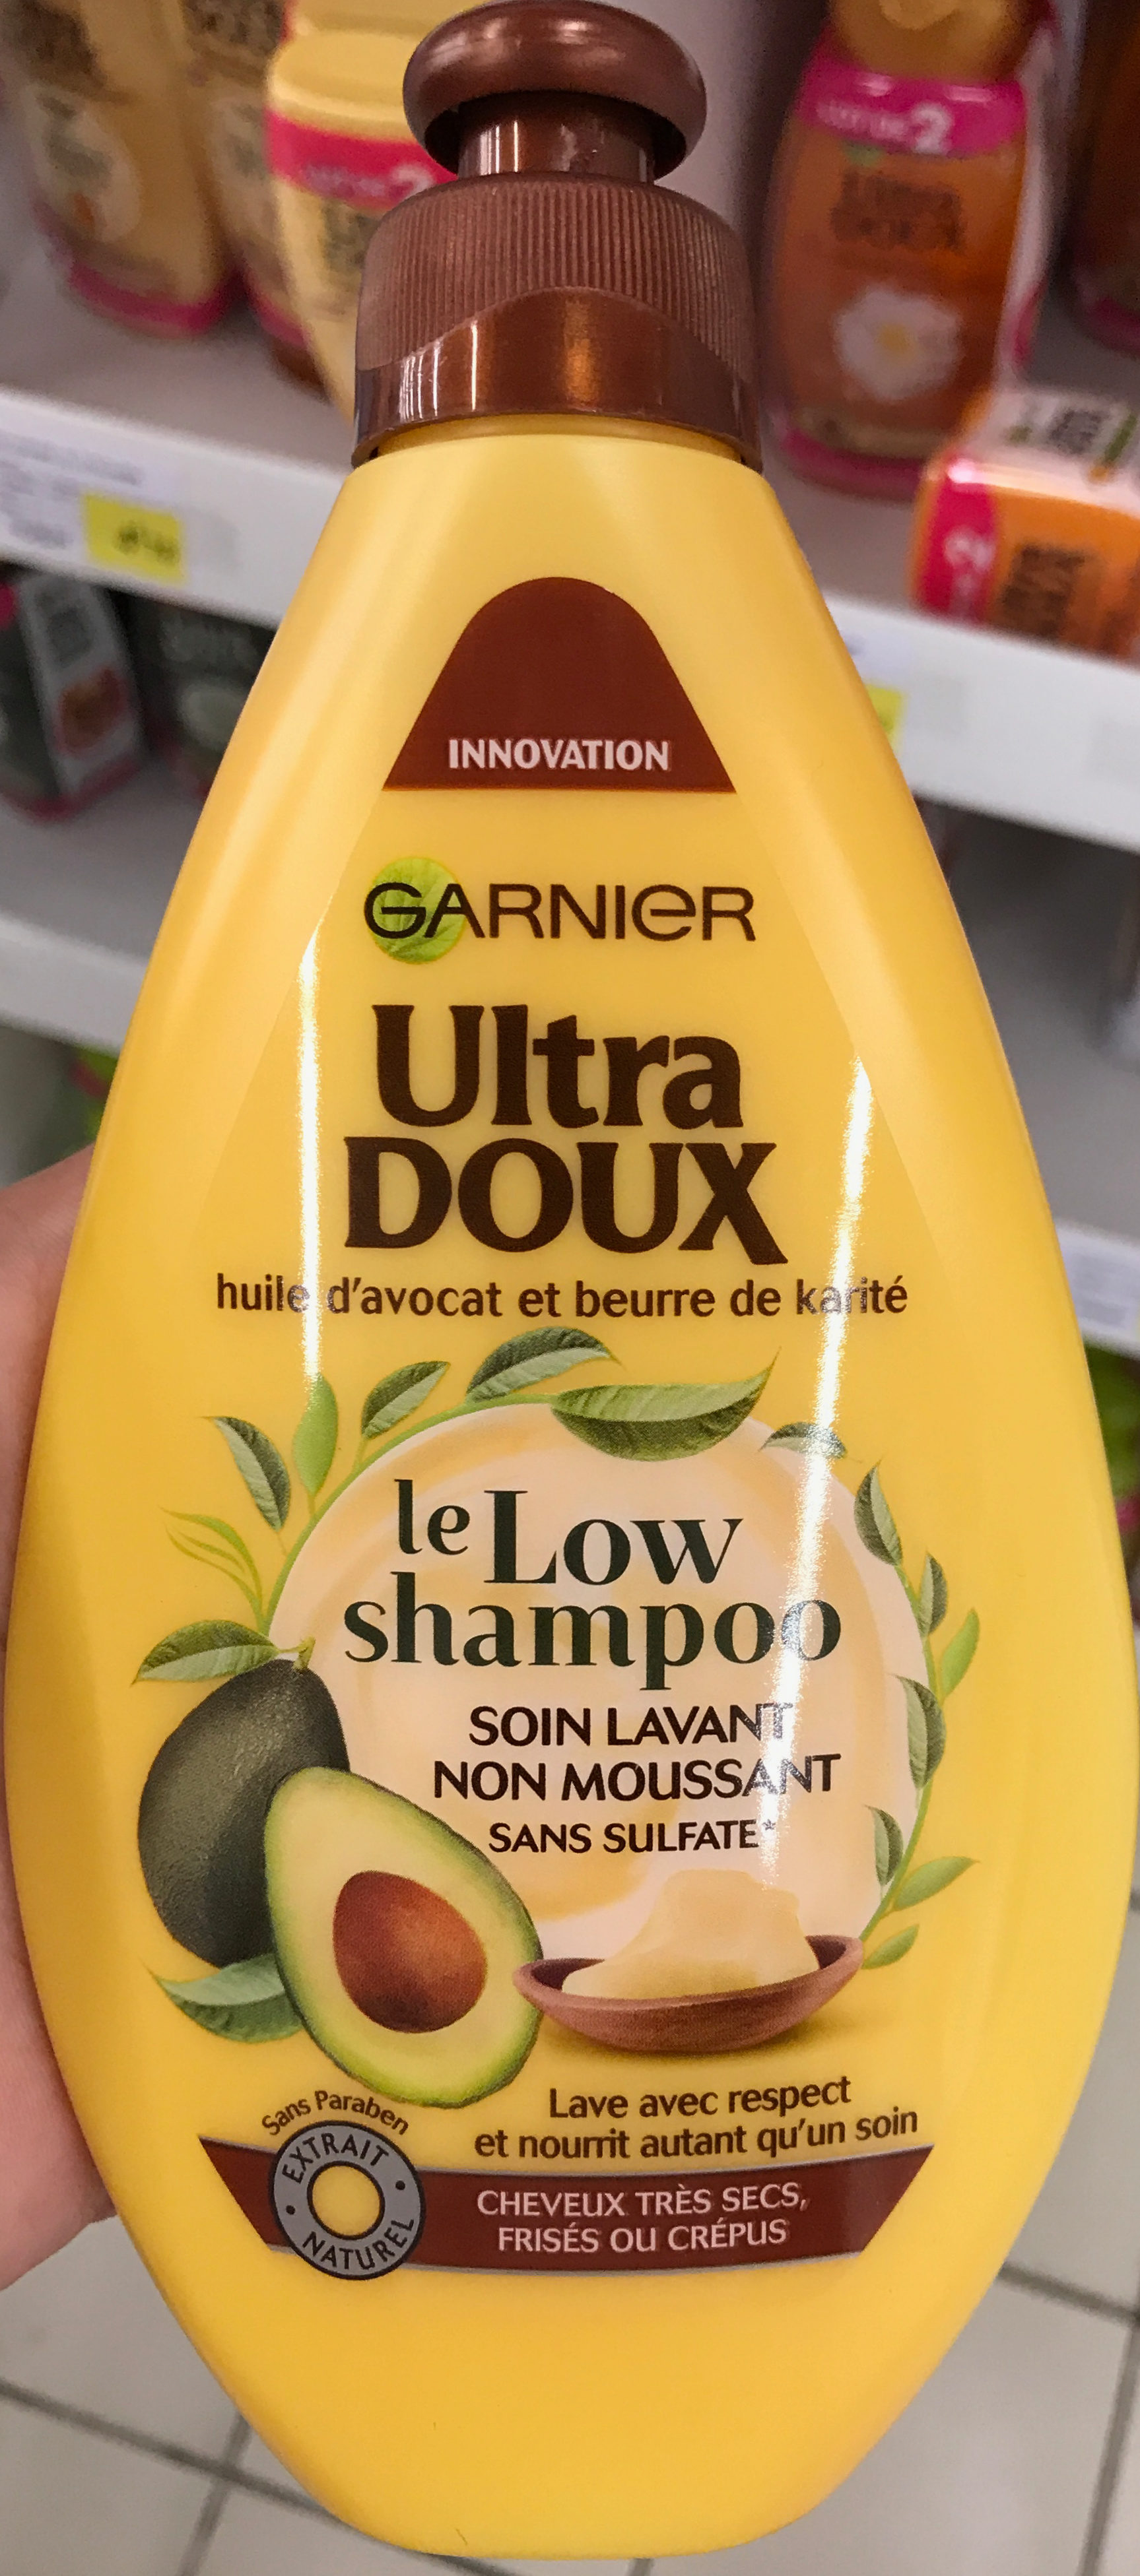 Ultra Doux Le Low Shampoo - Product